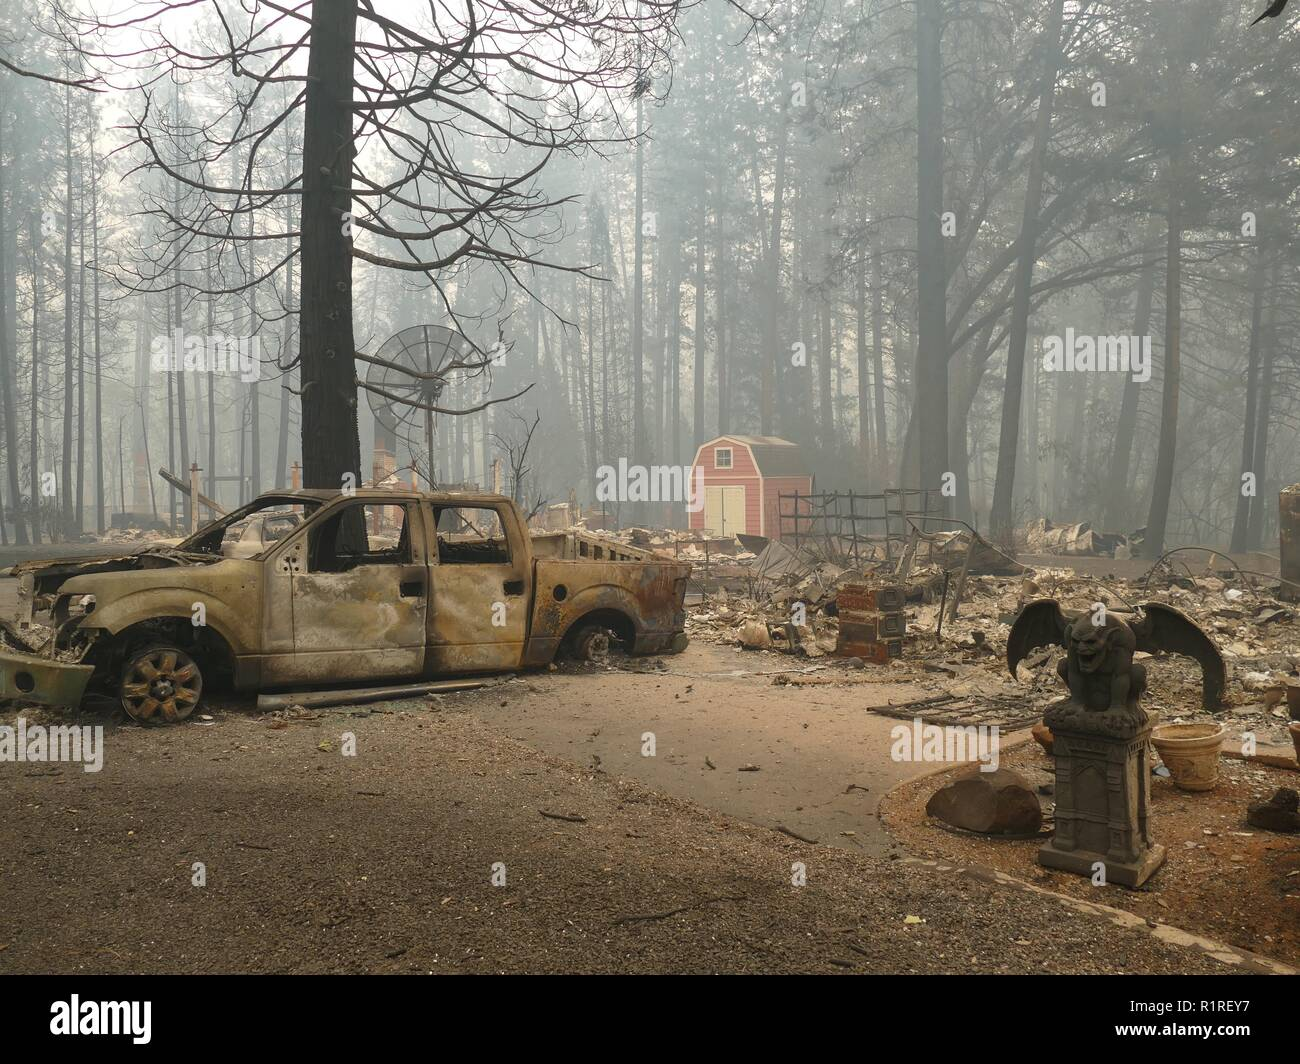 Paradise, USA. 13th Nov, 2018. Burnt debris left behind by the forest fire, the so-called 'camp' fire. Paradise has become a ghost town. Only fire engines and fire engines drive through the spooky landscape. Residents are not allowed to return for the time being. (to dpa 'Paradise as hell on earth - 'Will create a new church' of 14.11.2018) Credit: Barbara Munker/dpa/Alamy Live News - Stock Image